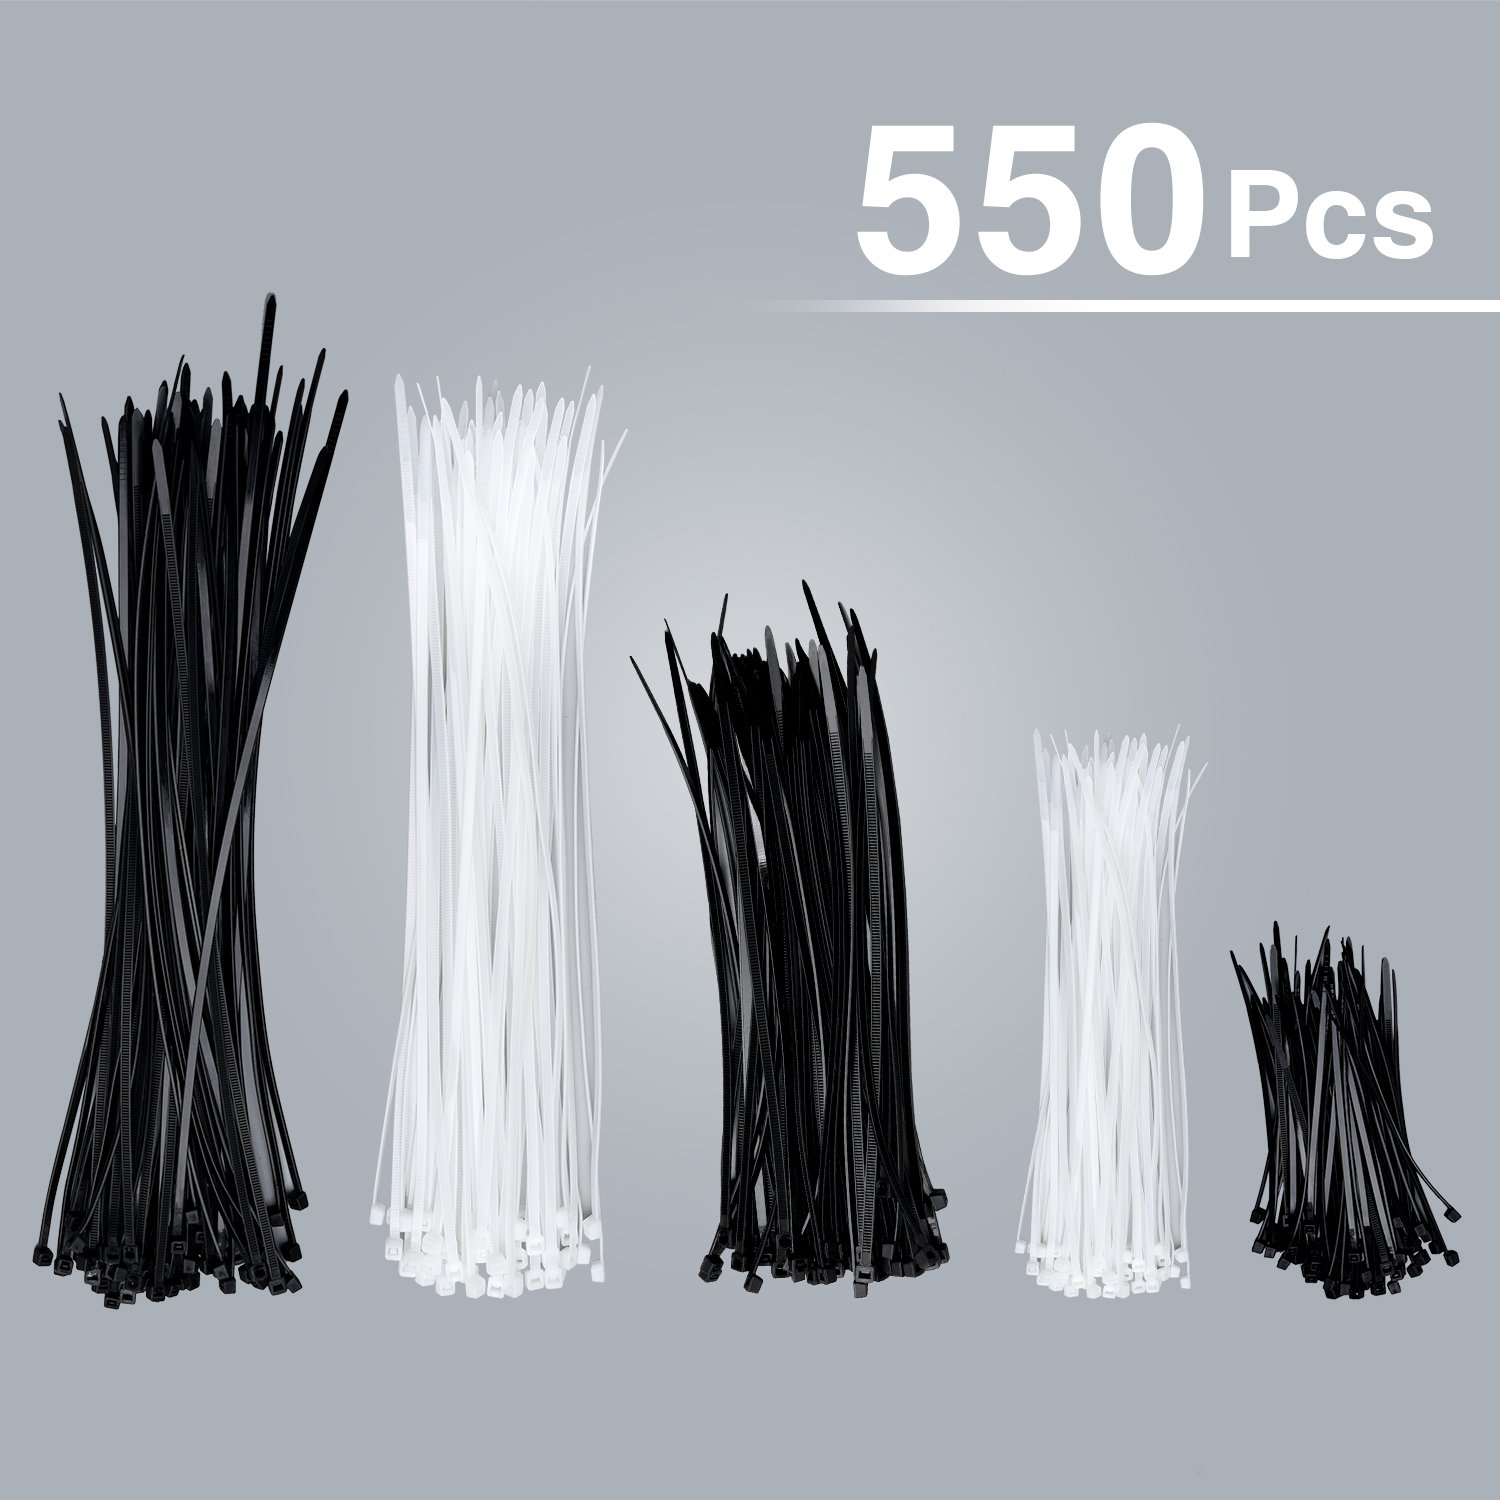 Syntrific 550 Pack Zip Ties Heavy Duty Cable Ties zip tie zip tie gun zip tie mount tie Cable Zip Ties (4''+6''+8''+12Inch) Perfect for Organizing Wires Home &Office Garage Workshop Use(White and Black)